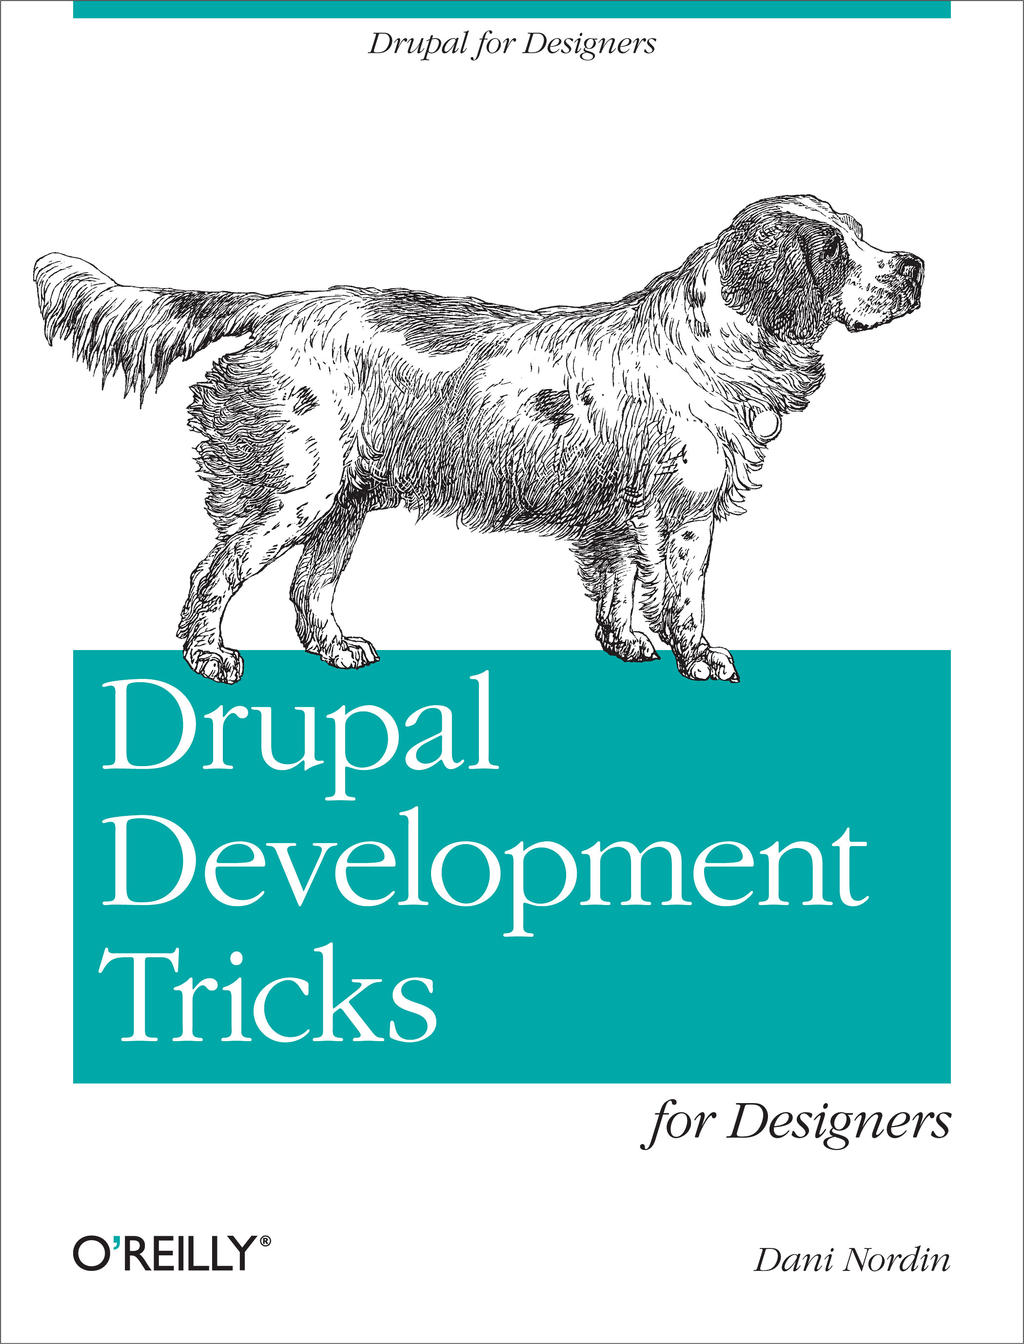 Drupal Development Tricks for Designers By: Dani Nordin